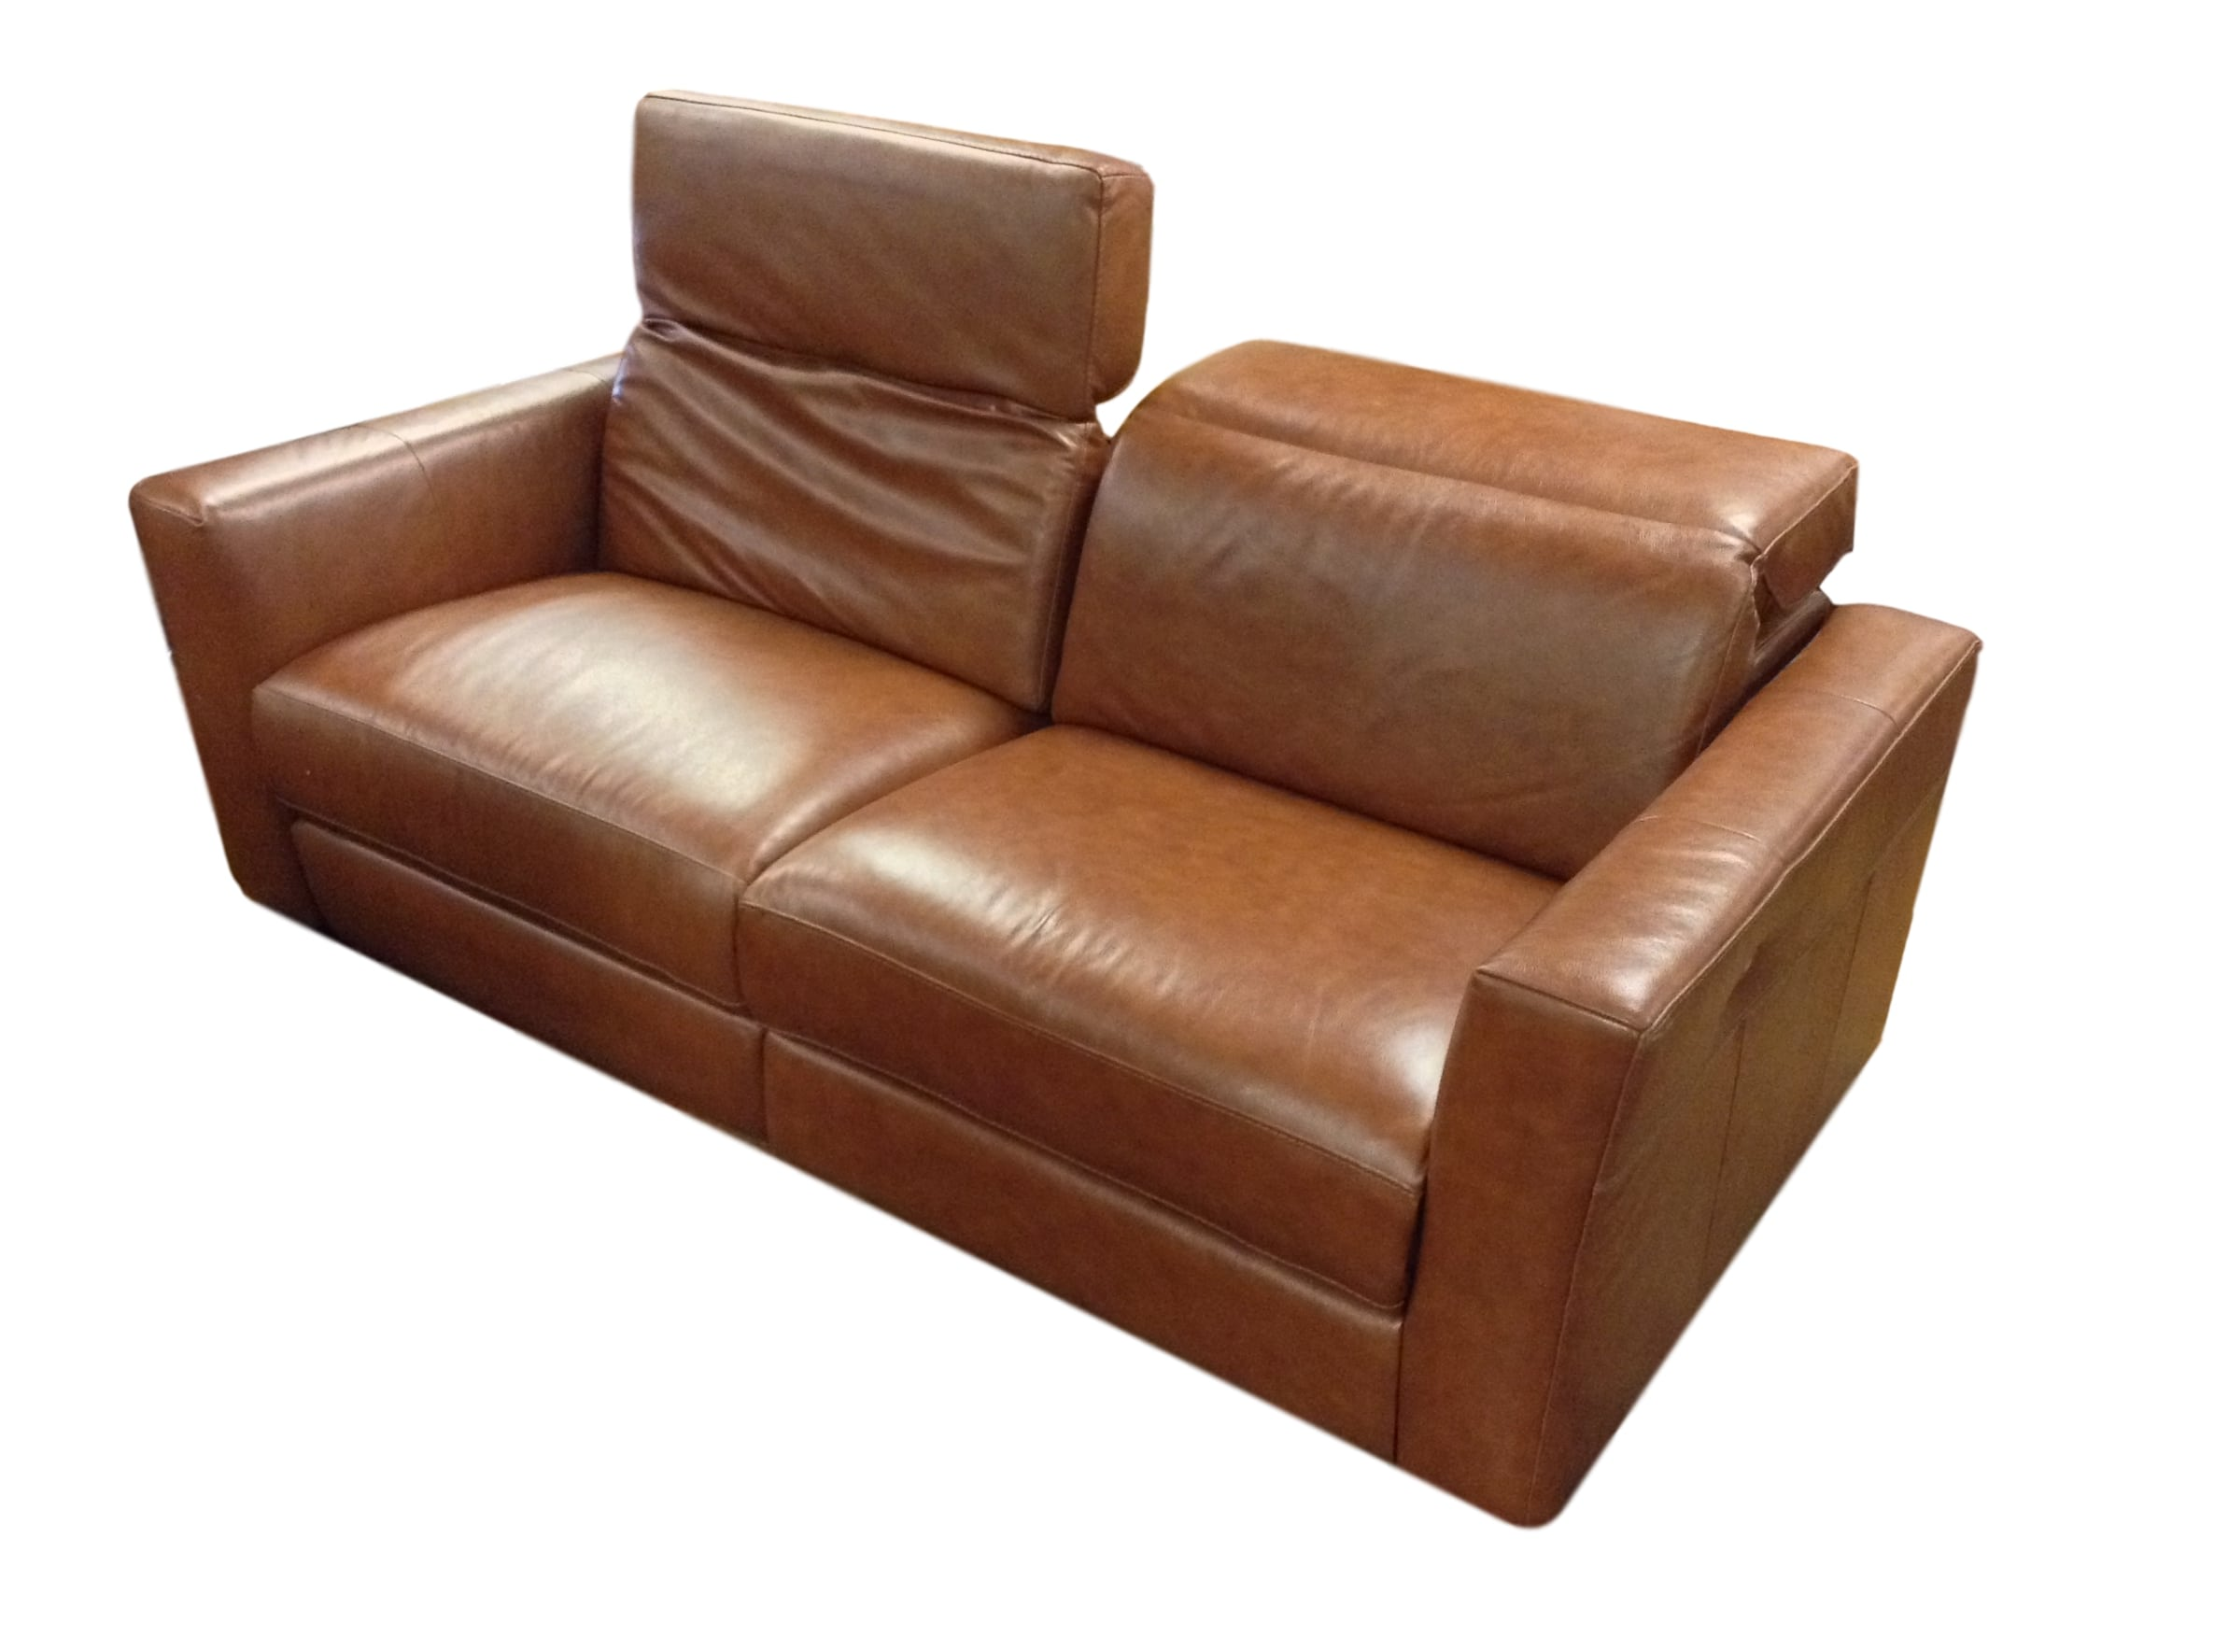 Dual Reclining Sofa Alabama Furniture